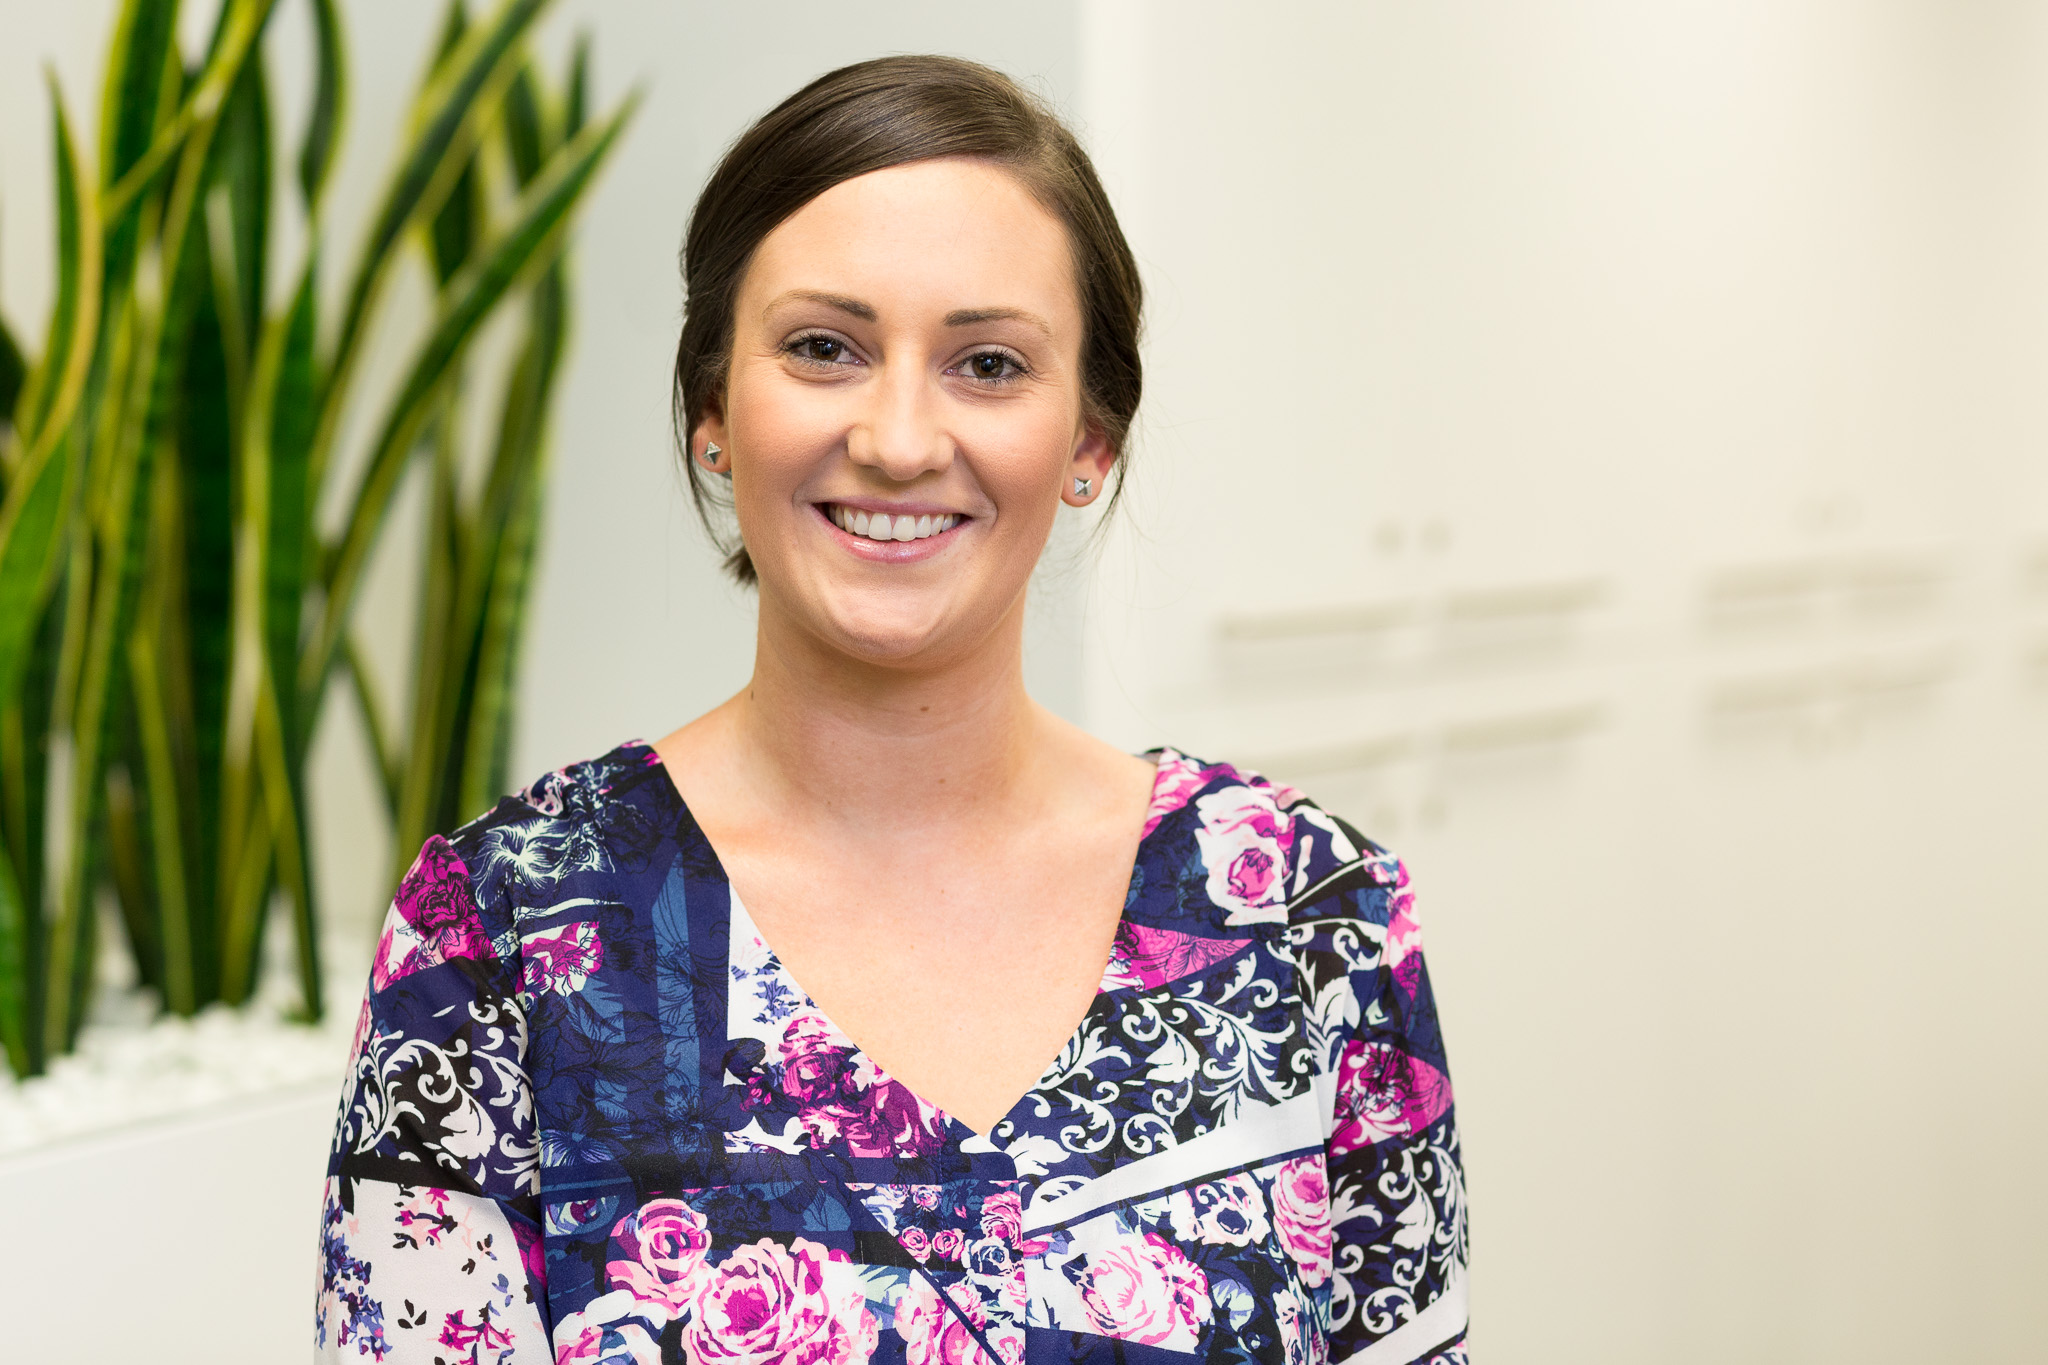 KERRI MIDDLETON Corporate Secretarial   Kerri started at Letcher Moroney in March 2014 as our receptionist. She has a background in hospitality and is a competent receptionist and administration support person who currently specialises in BGL, ASIC and corporate affairs.